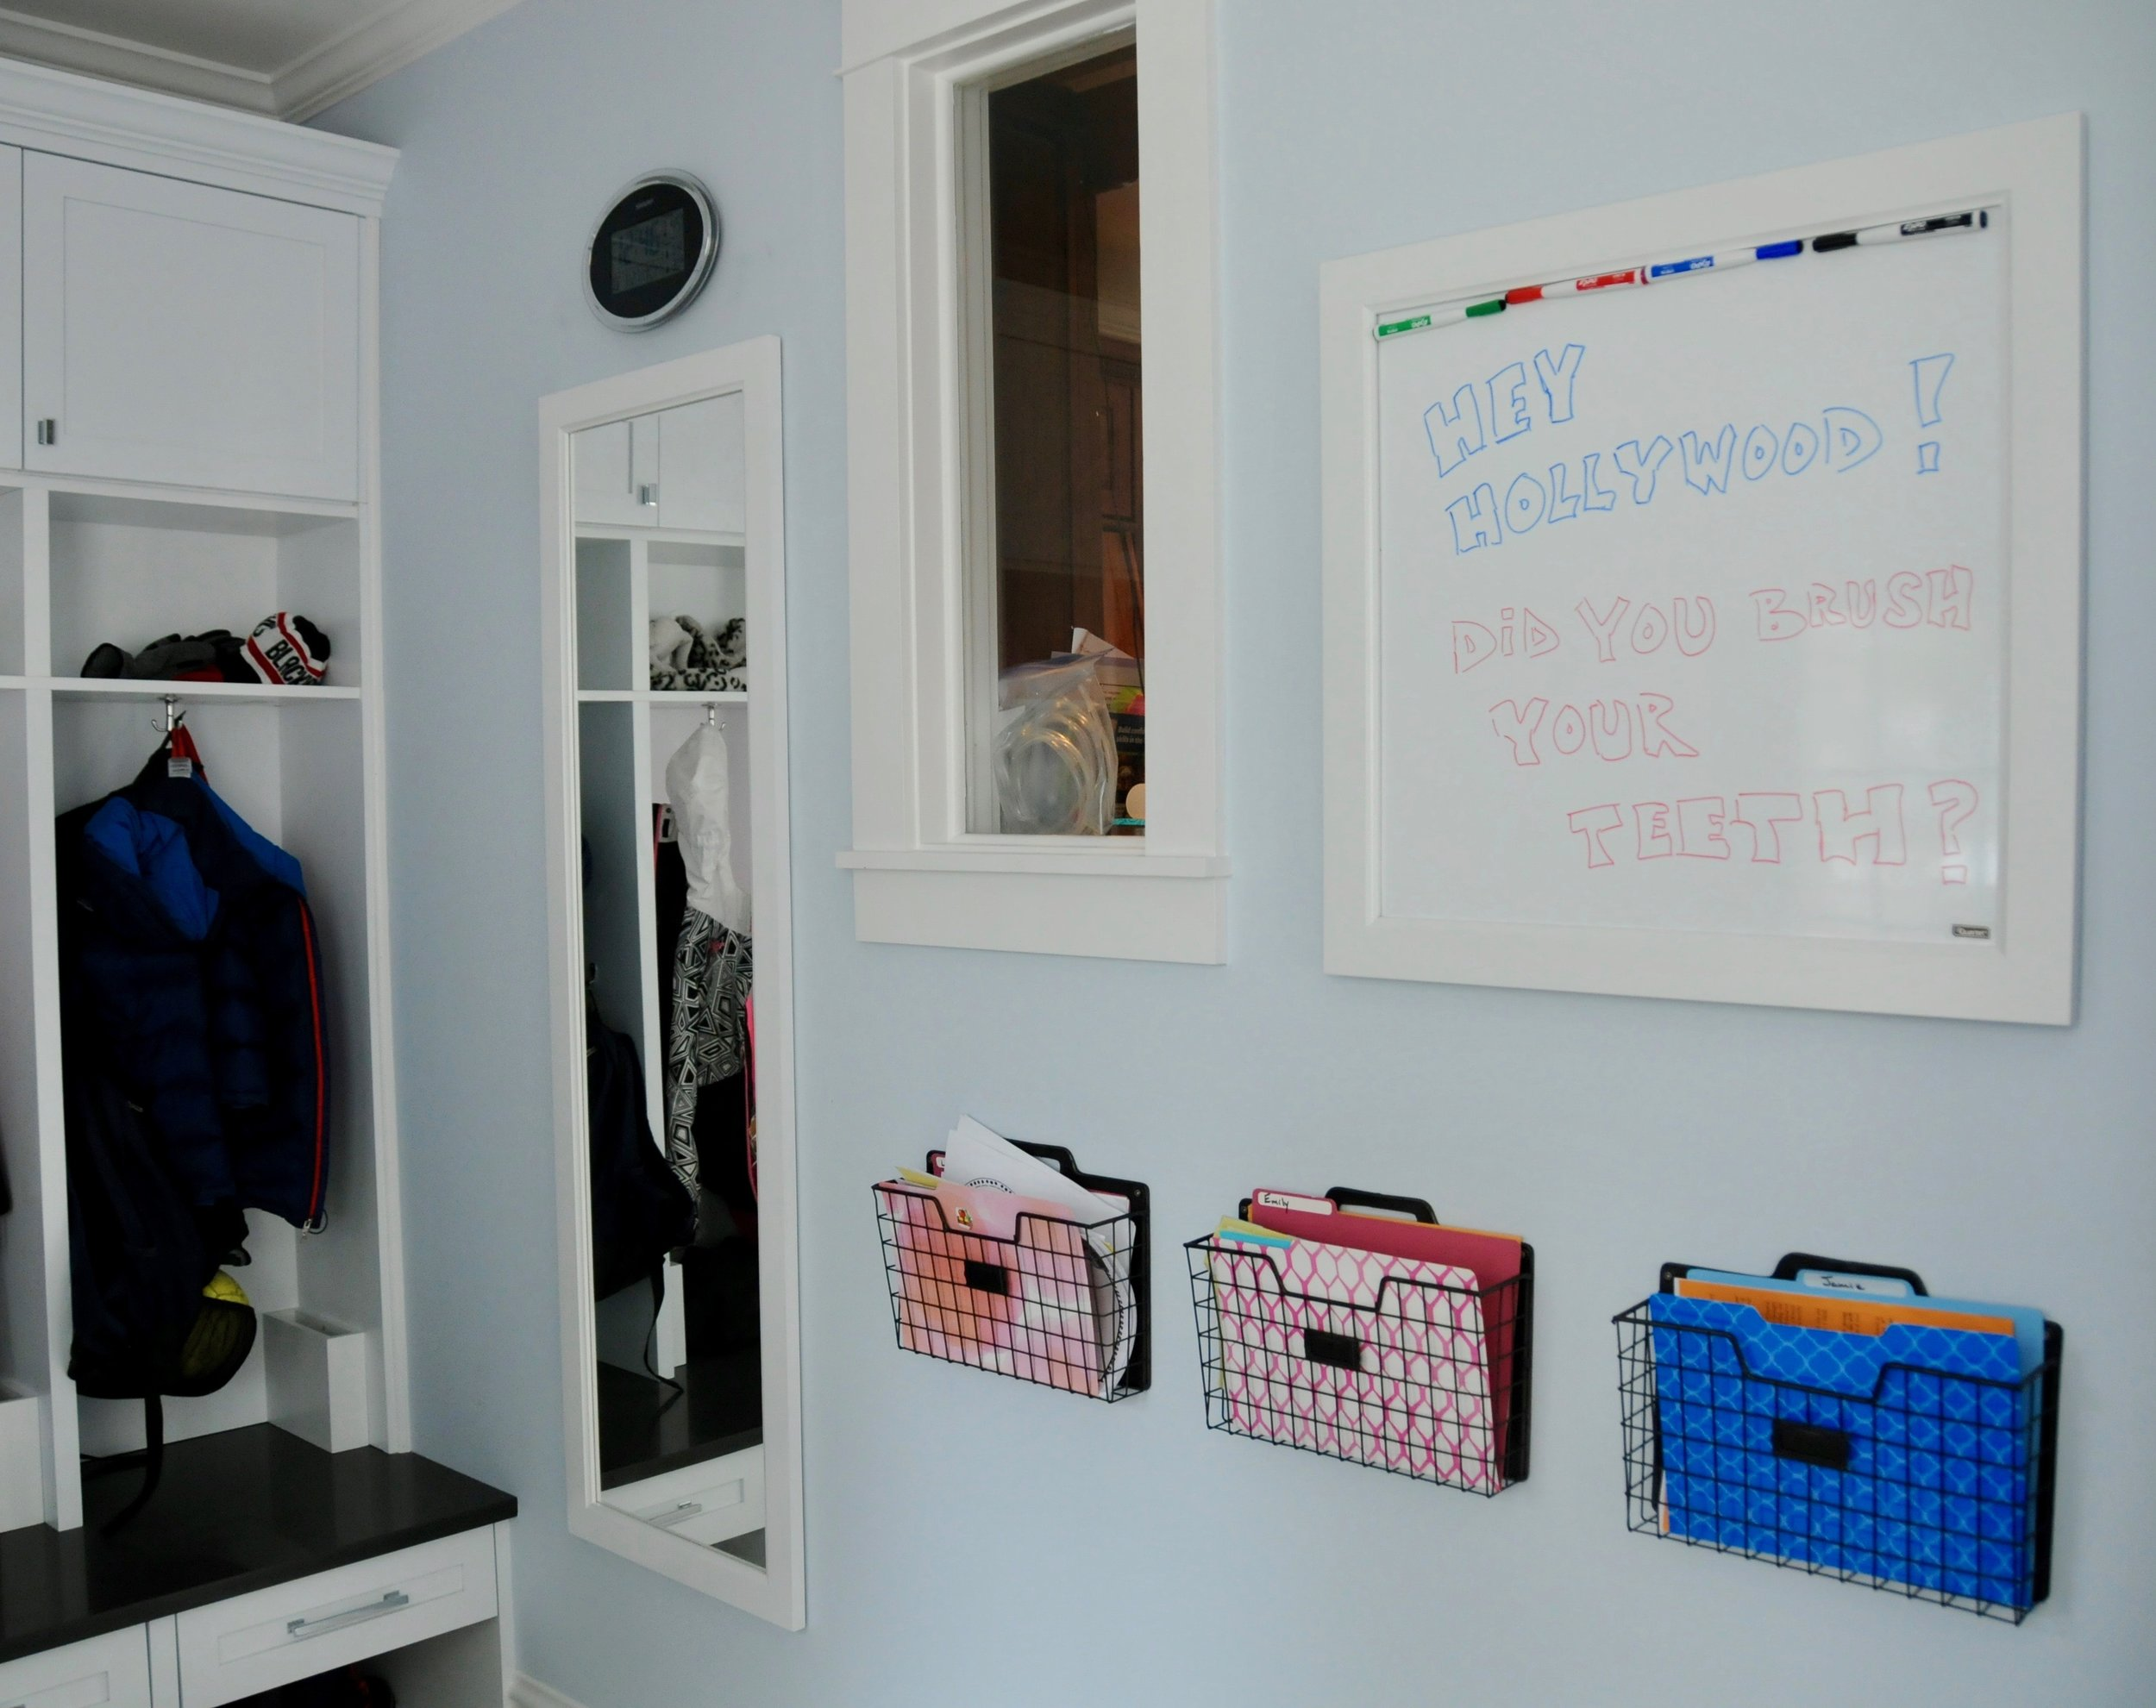 We framed the mirror and white board to match the cabinetry, each child has a school basket, and the whiteboard is a convenient messaging companion to all of the devices in our digital world.